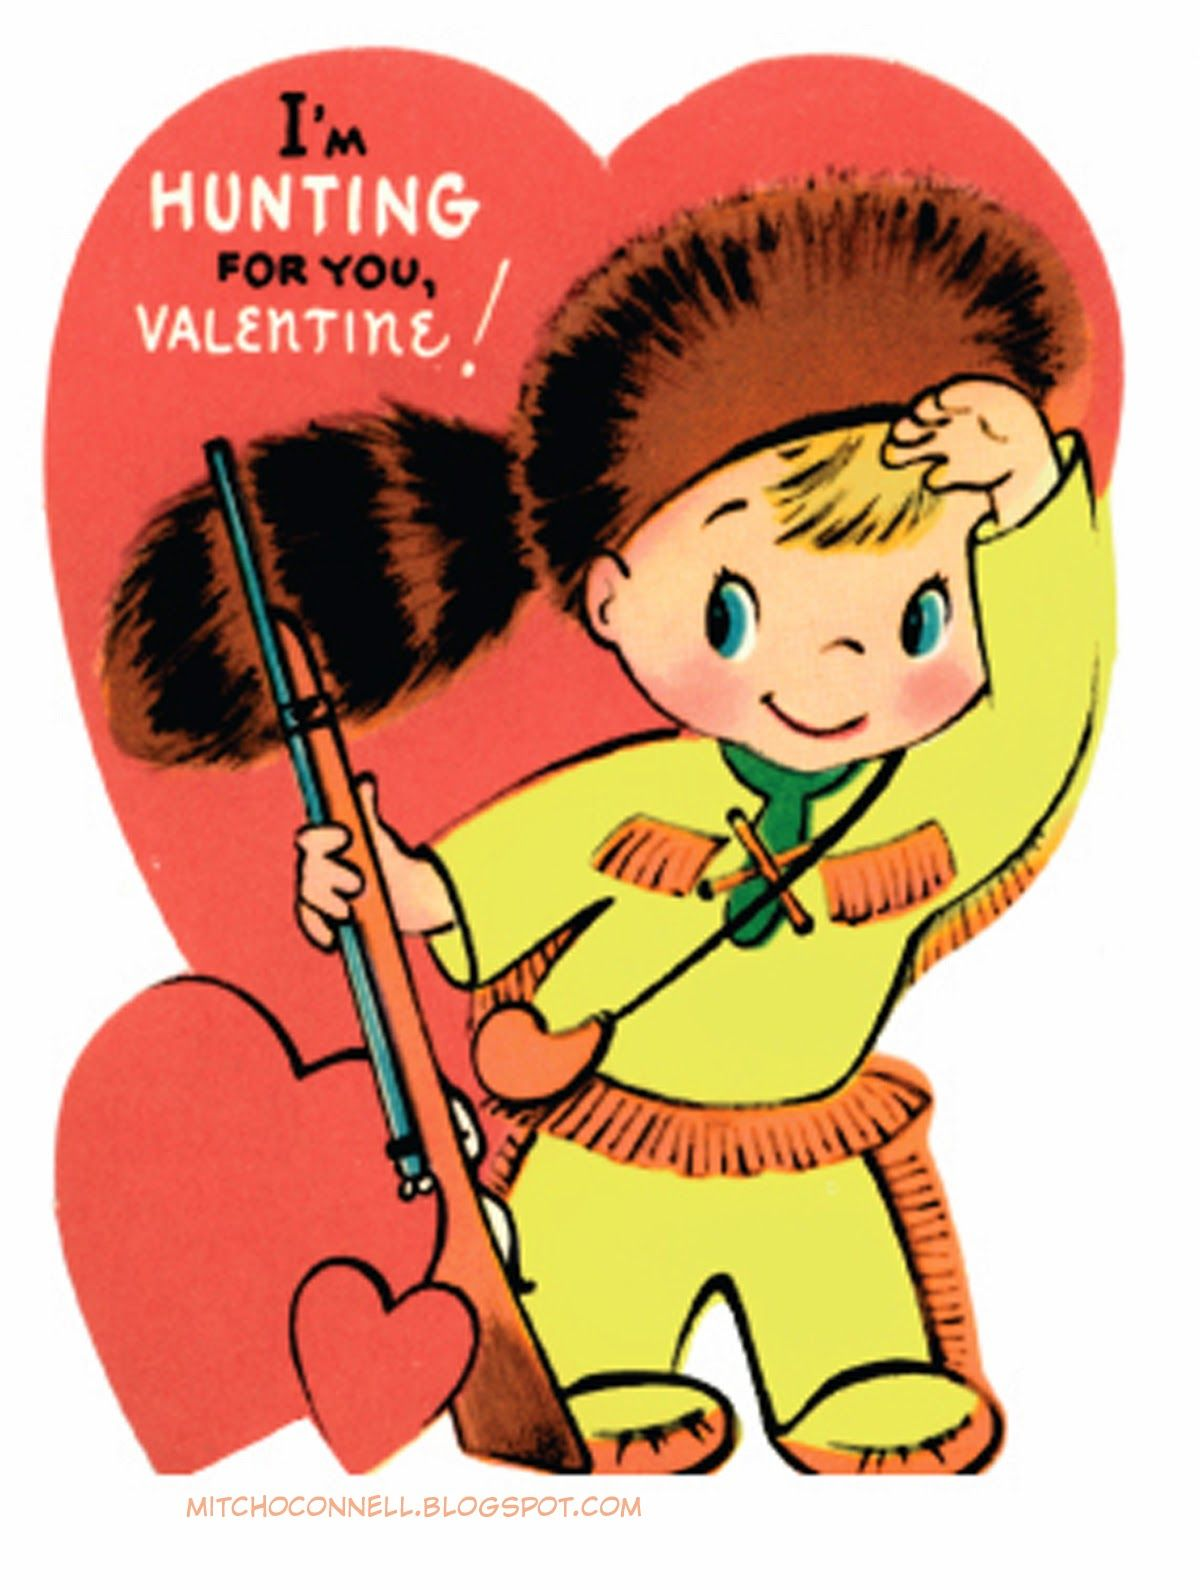 Mitch oconnell unintentionally hilarious vintage valentines day harrison greetings vintage valentines day cards everyday greeting cards occasion greeting cards holiday greeting cards custom greeting cards cartoon kristyandbryce Gallery